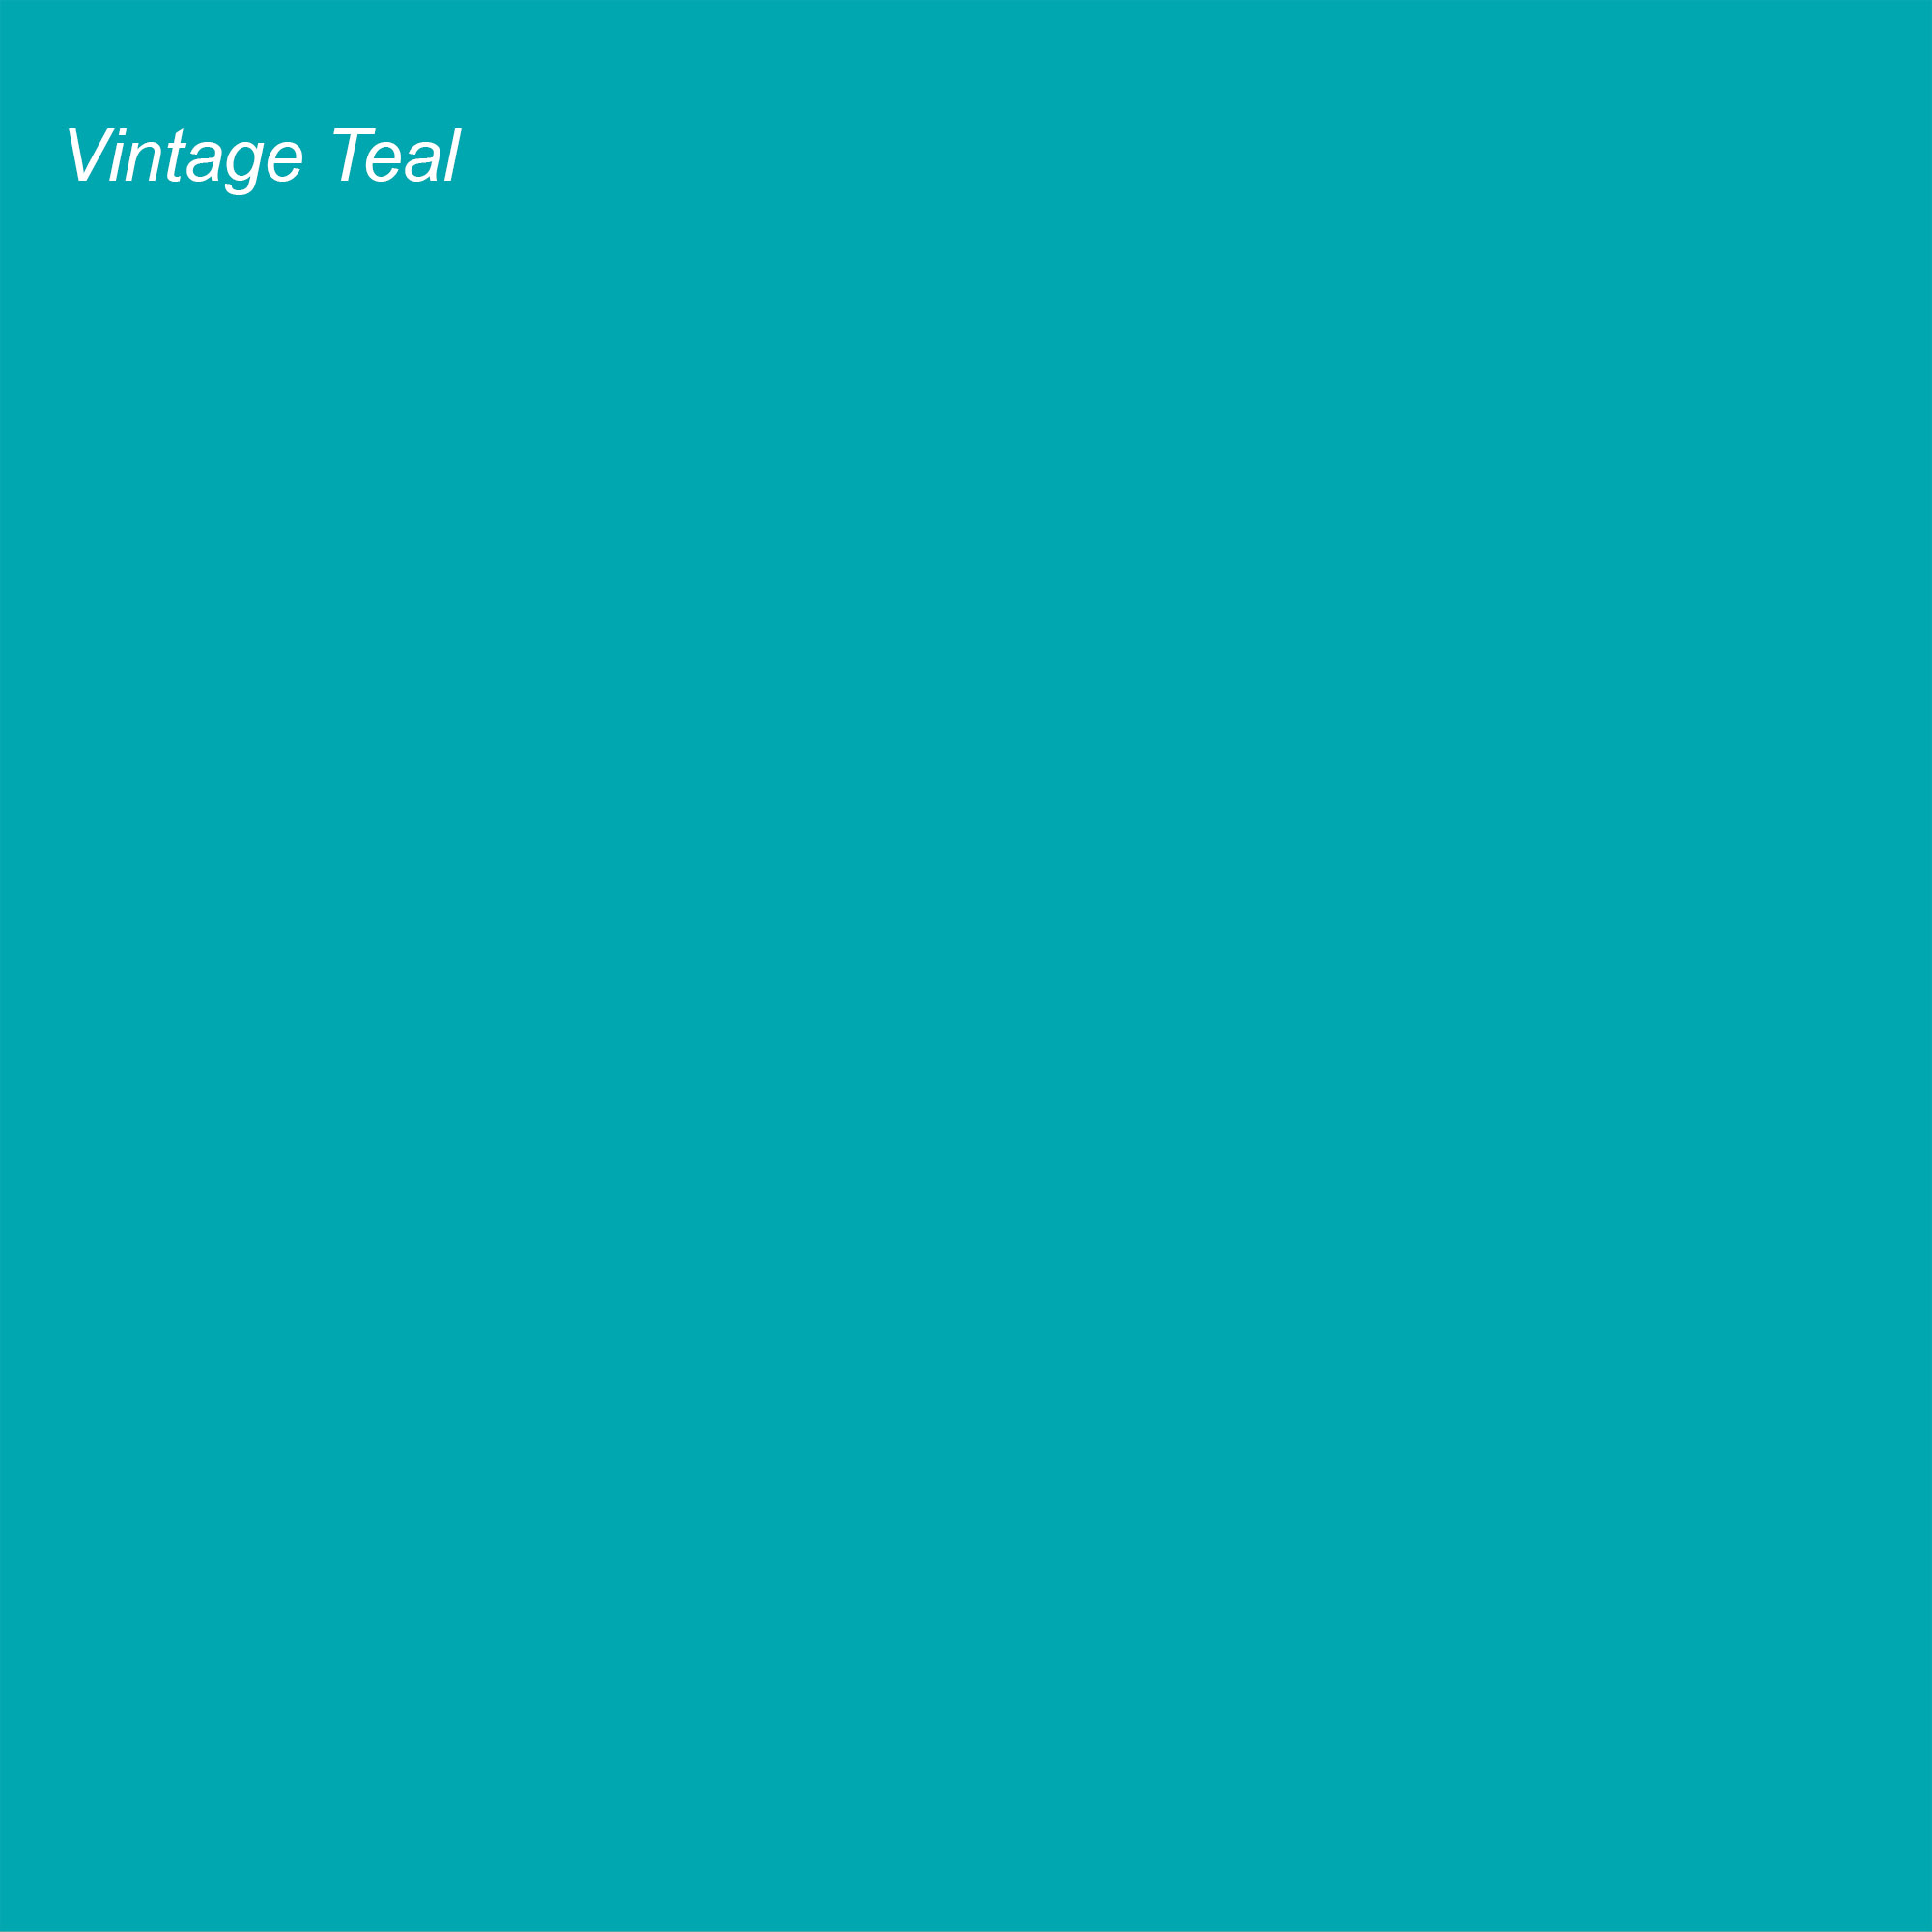 Rustoleum 2021 Color of the Year Suggested Accent Shade Vintage Teal